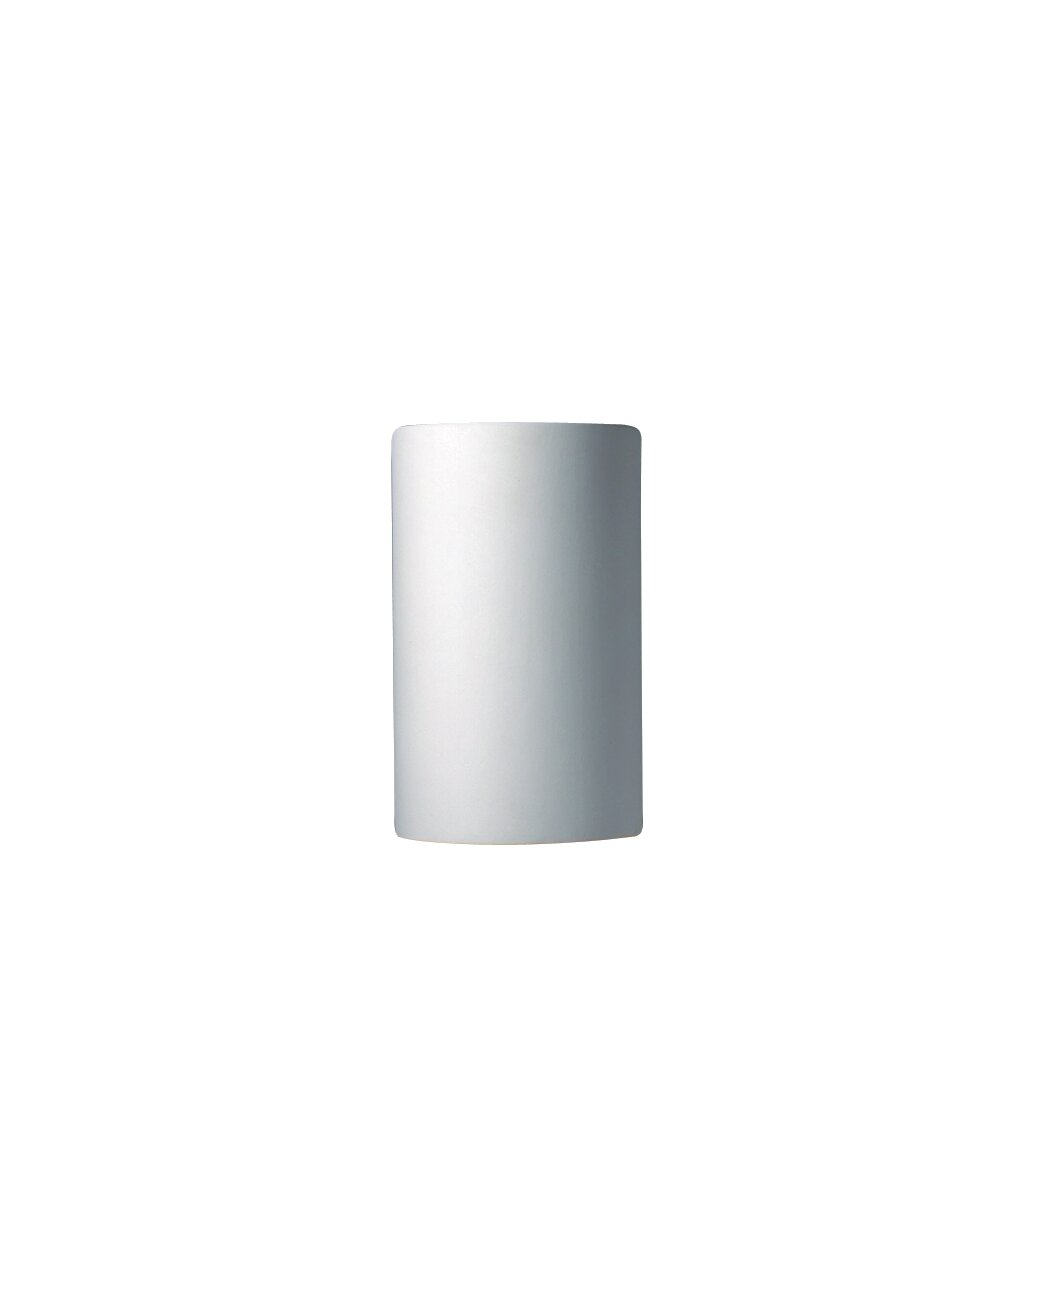 Scanlan Closed Top Small Cylinder 1 Light Wall Sconce